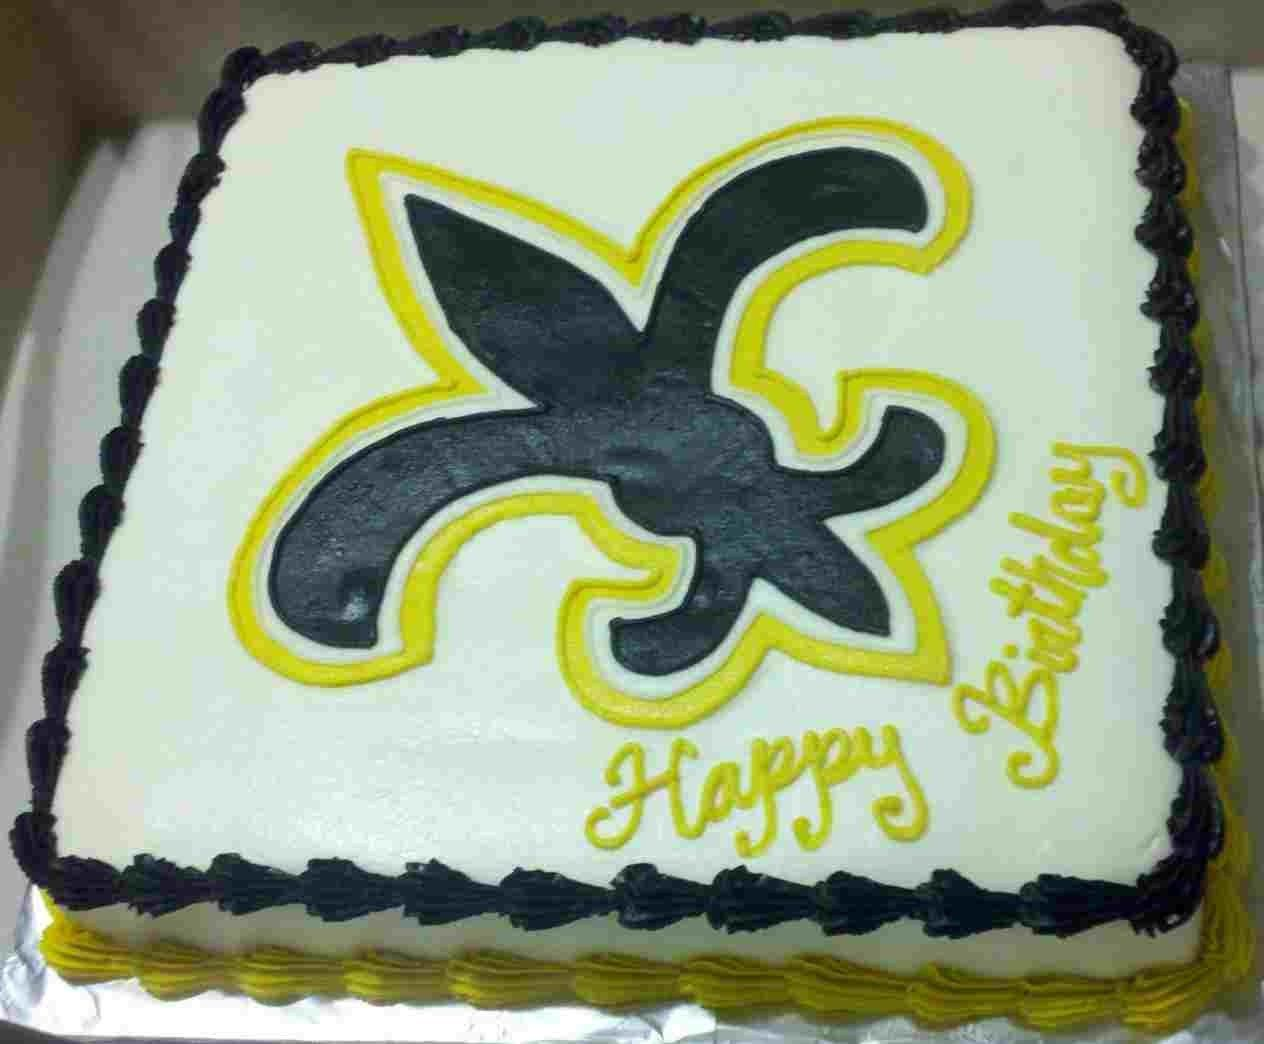 27 Best Photo Of Saints Birthday Cake Cakes Woodlands Boutique New Orleans BirthdayCakeImages